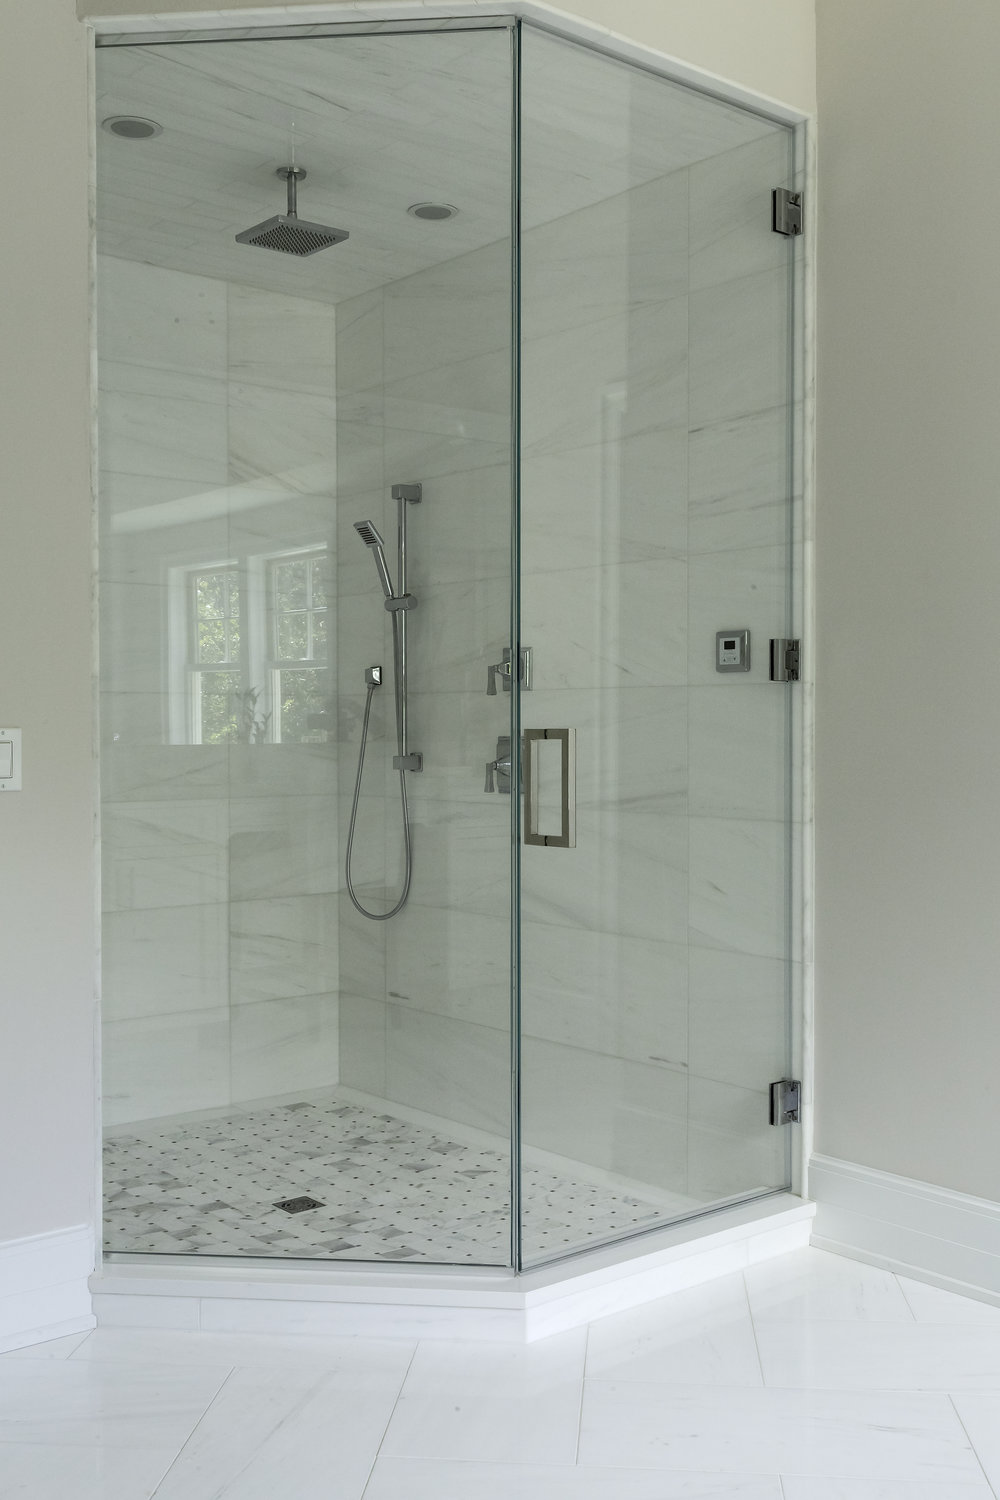 Glass walled standing shower with hanging shower head